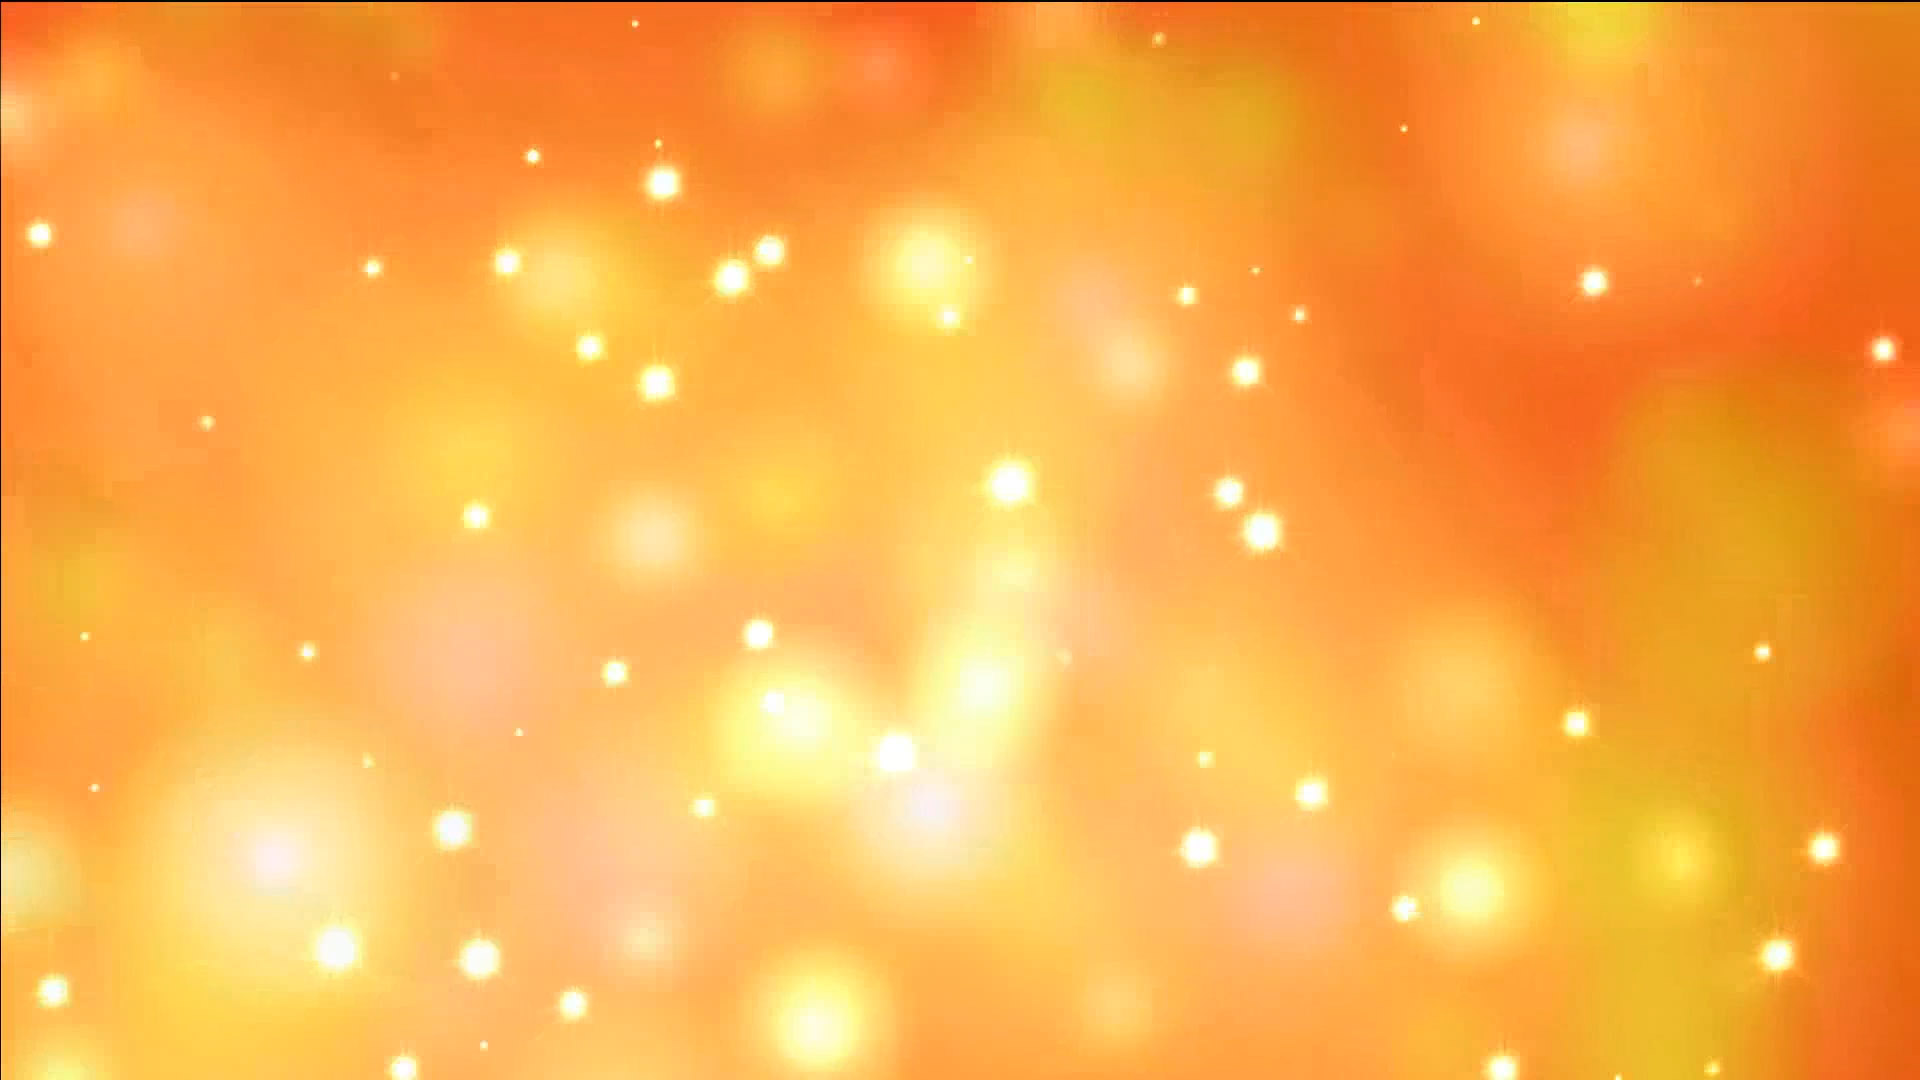 Design Love Fest Wallpaper Fall Fast Blinked Video On Orange Backing For Intro Titles In Hd